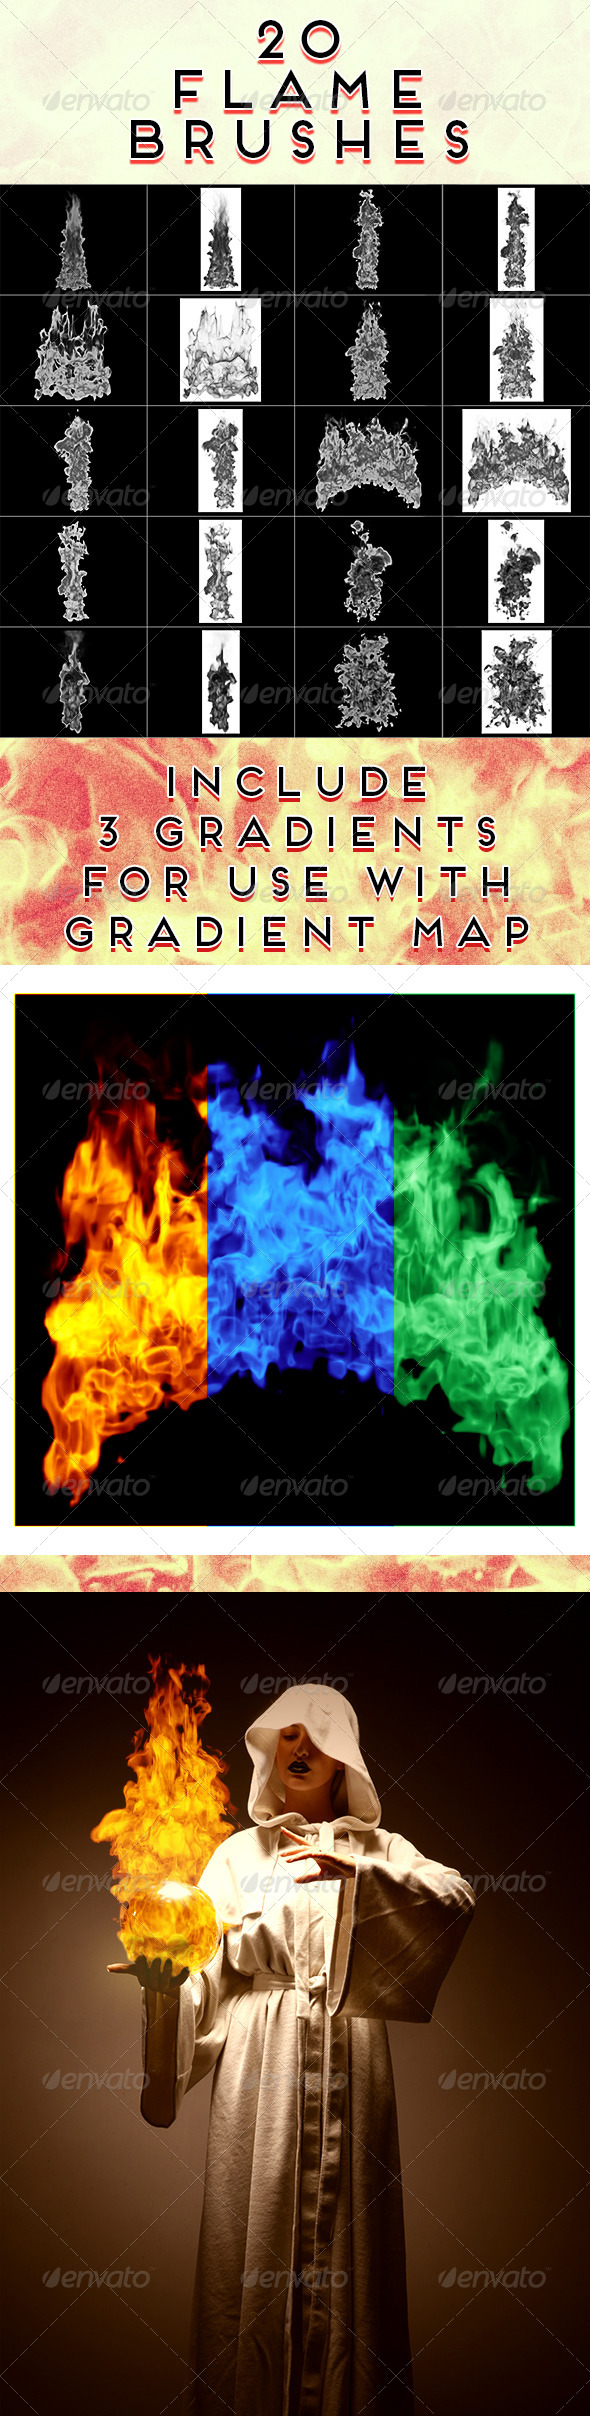 GraphicRiver 20 Flame Brushes 5392535